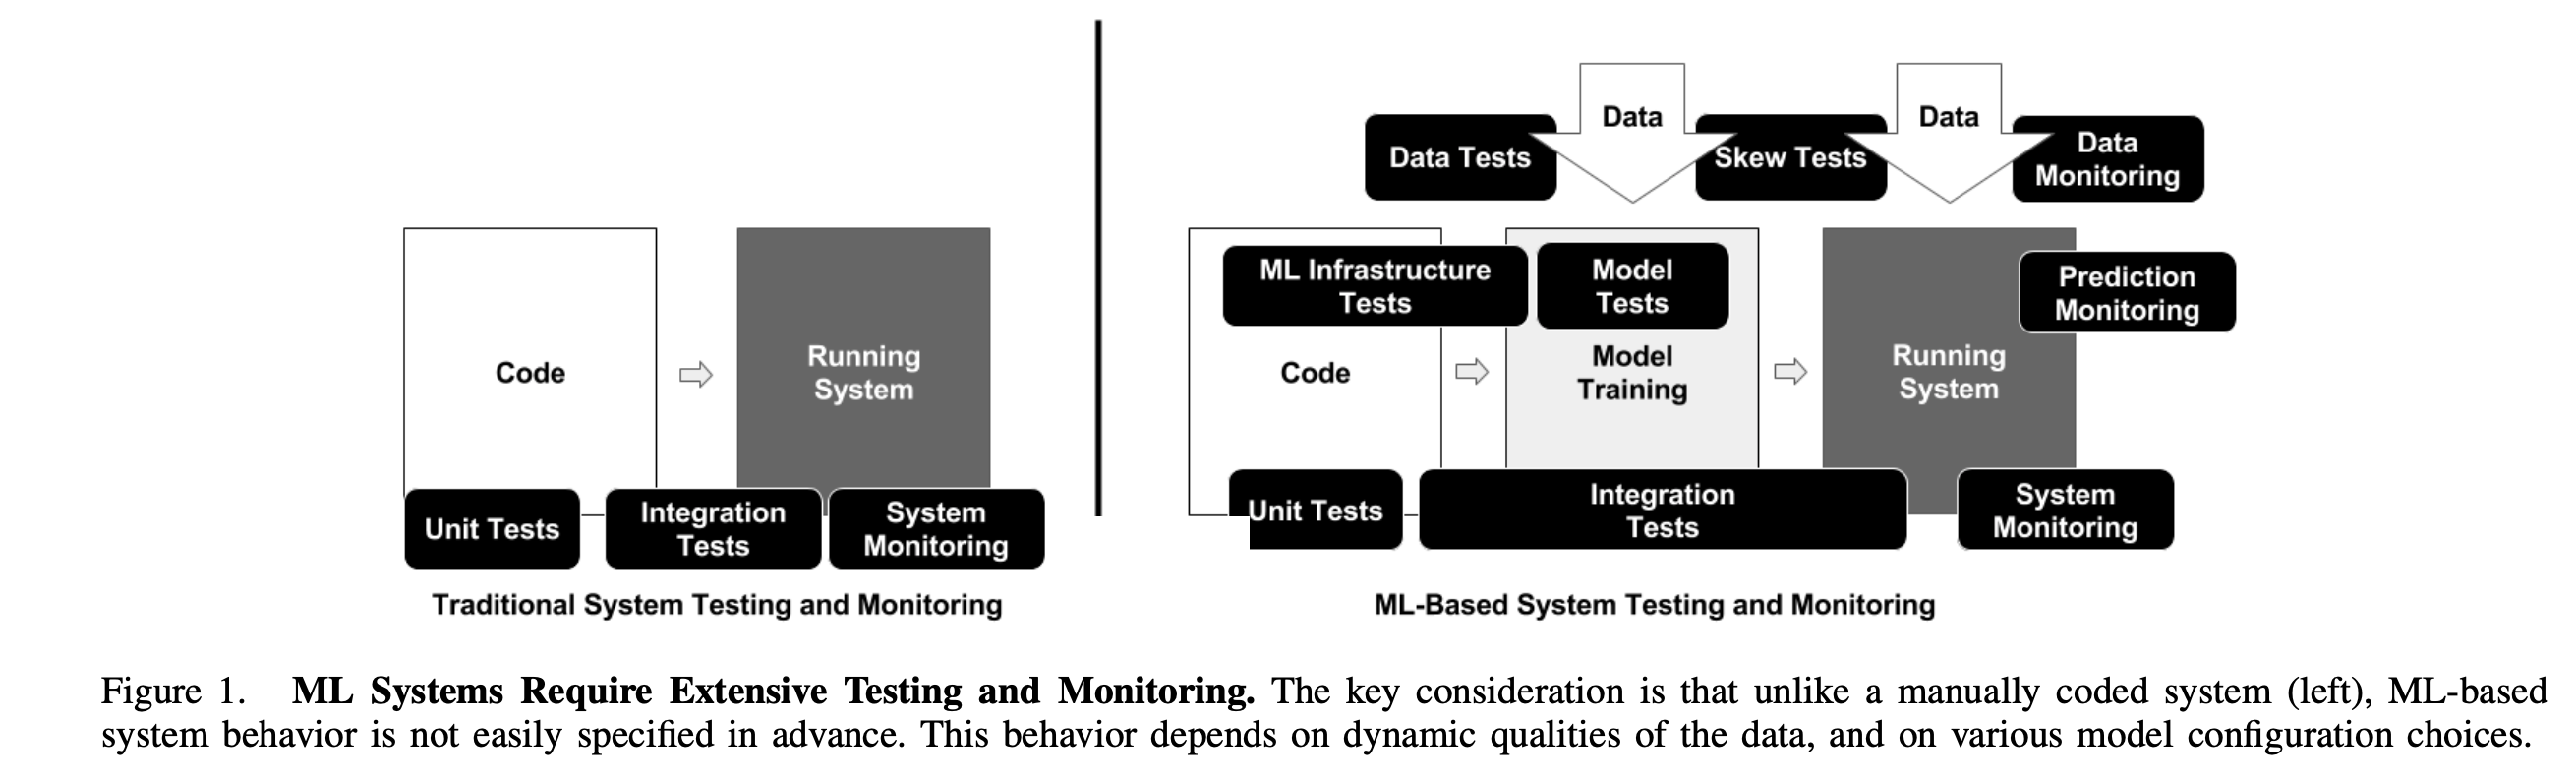 Testing in ML Systems